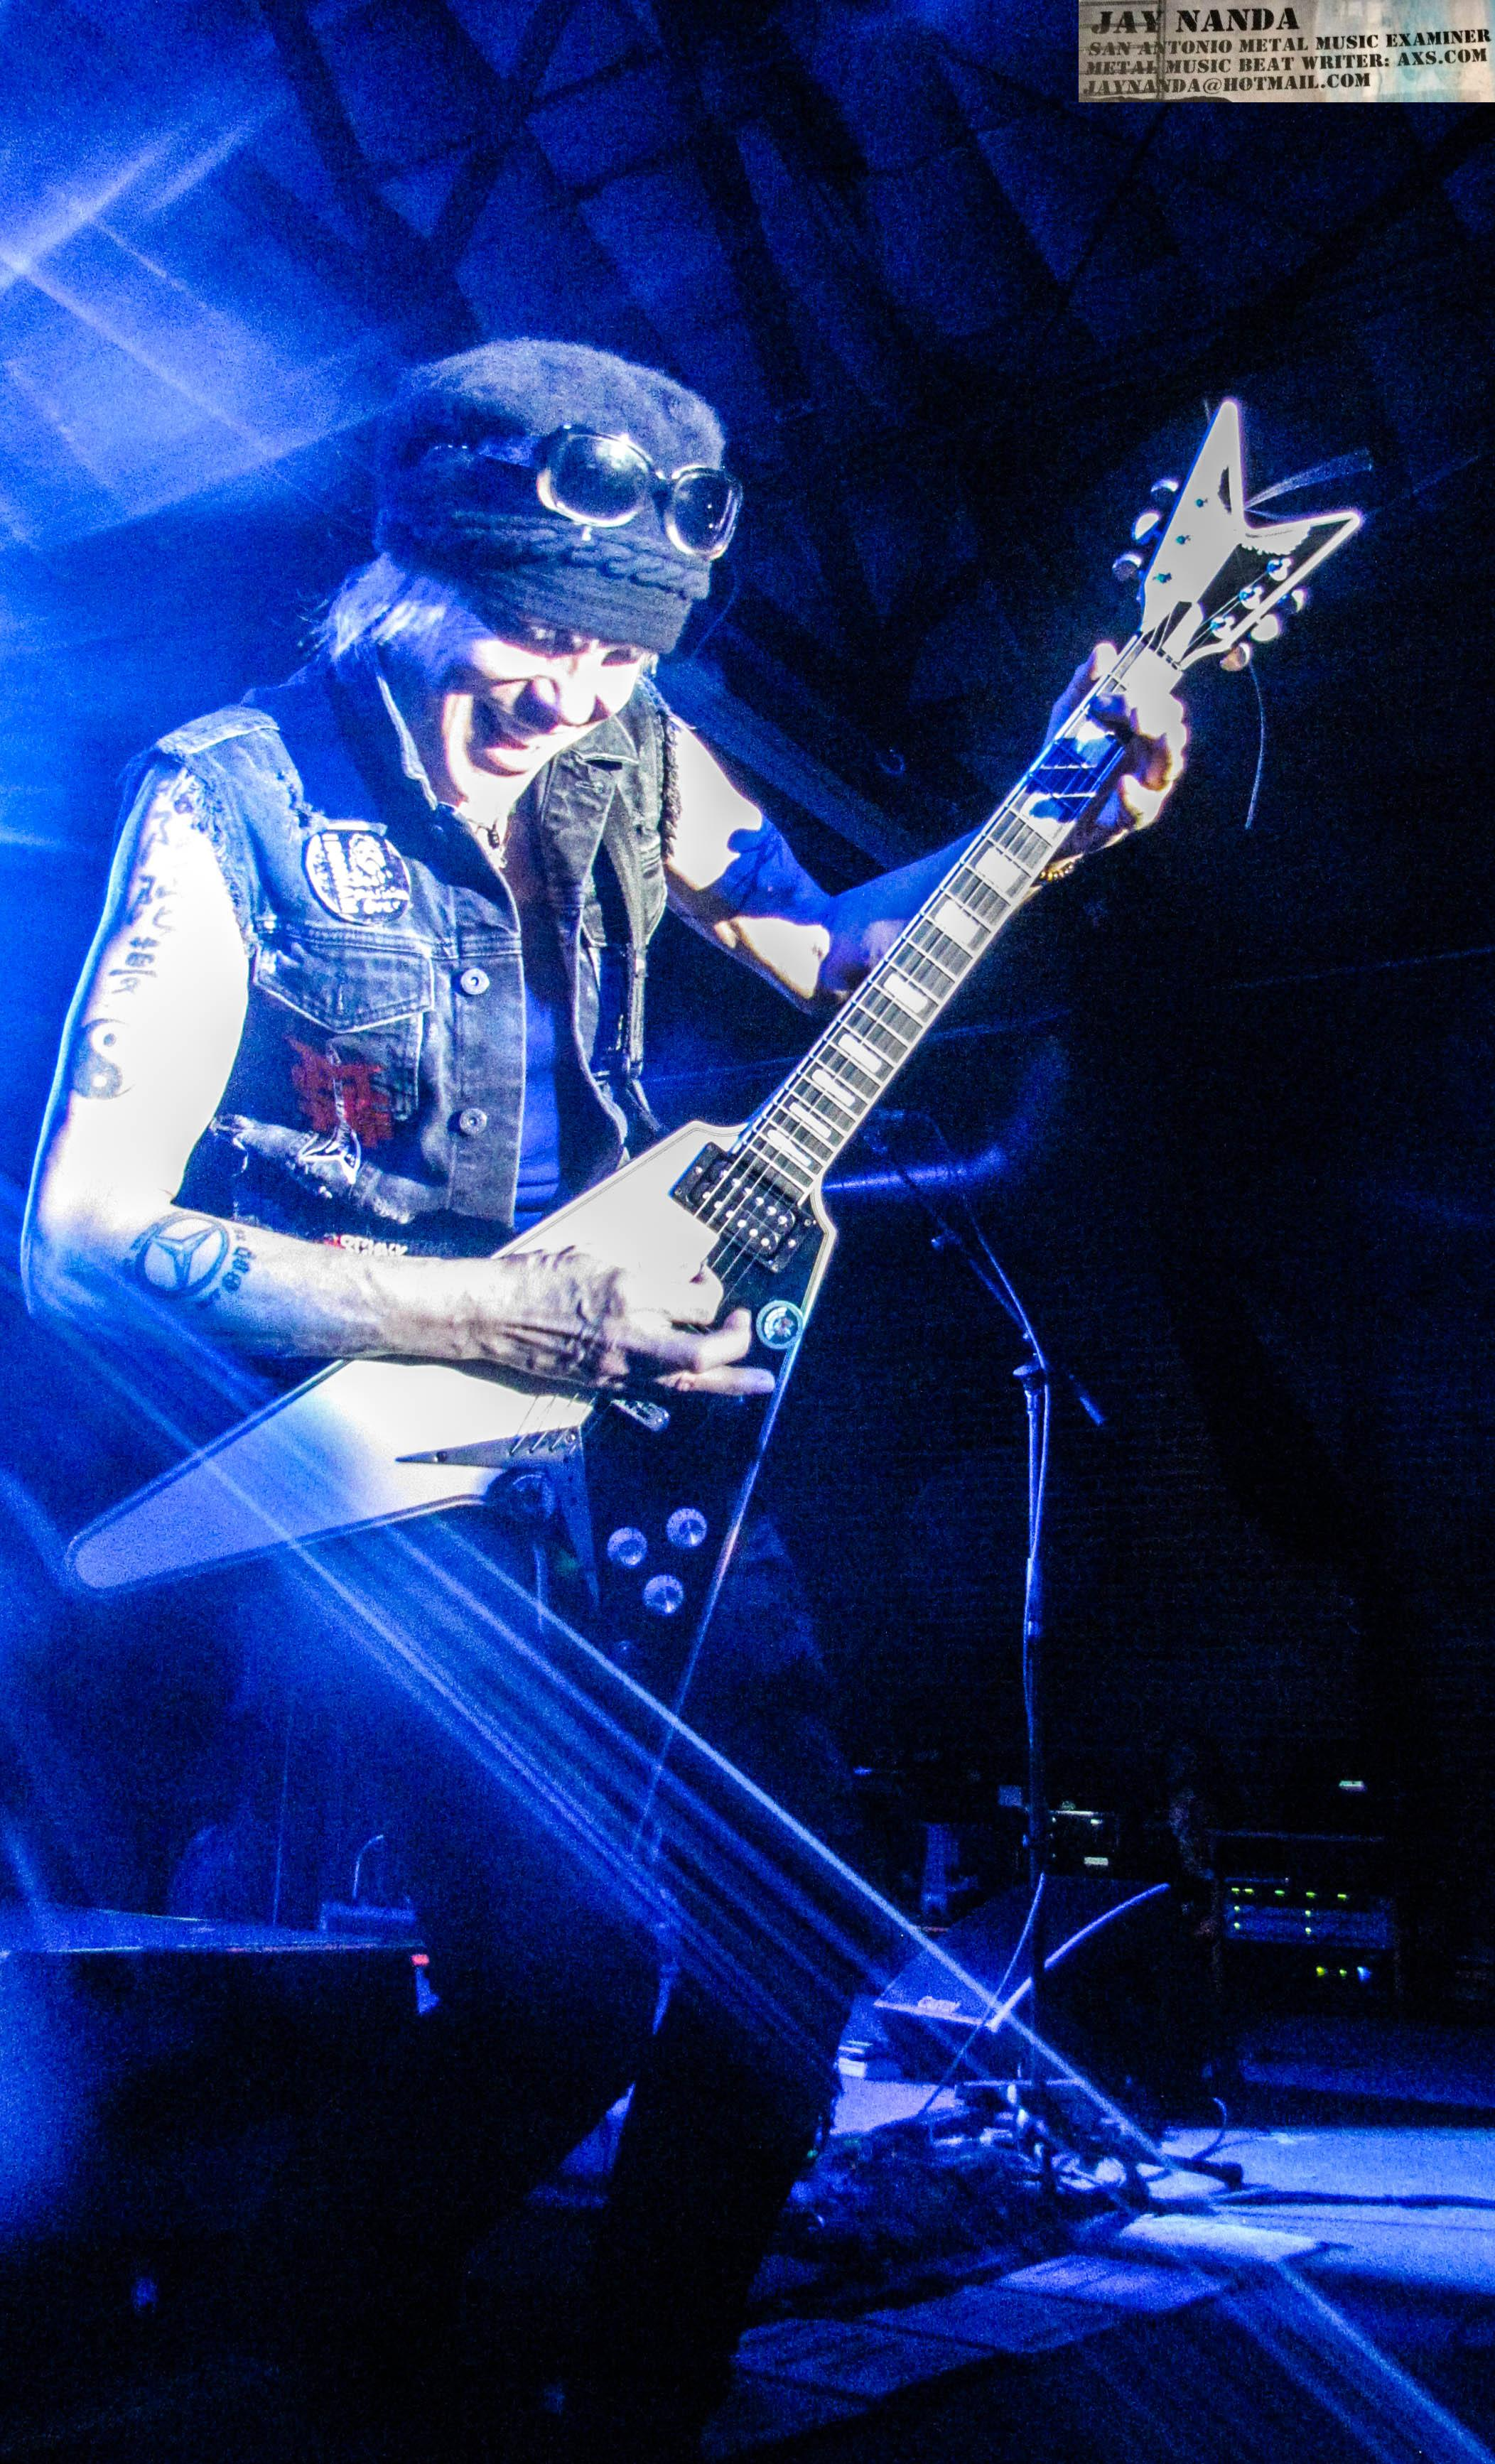 Schenker rips into a solo.